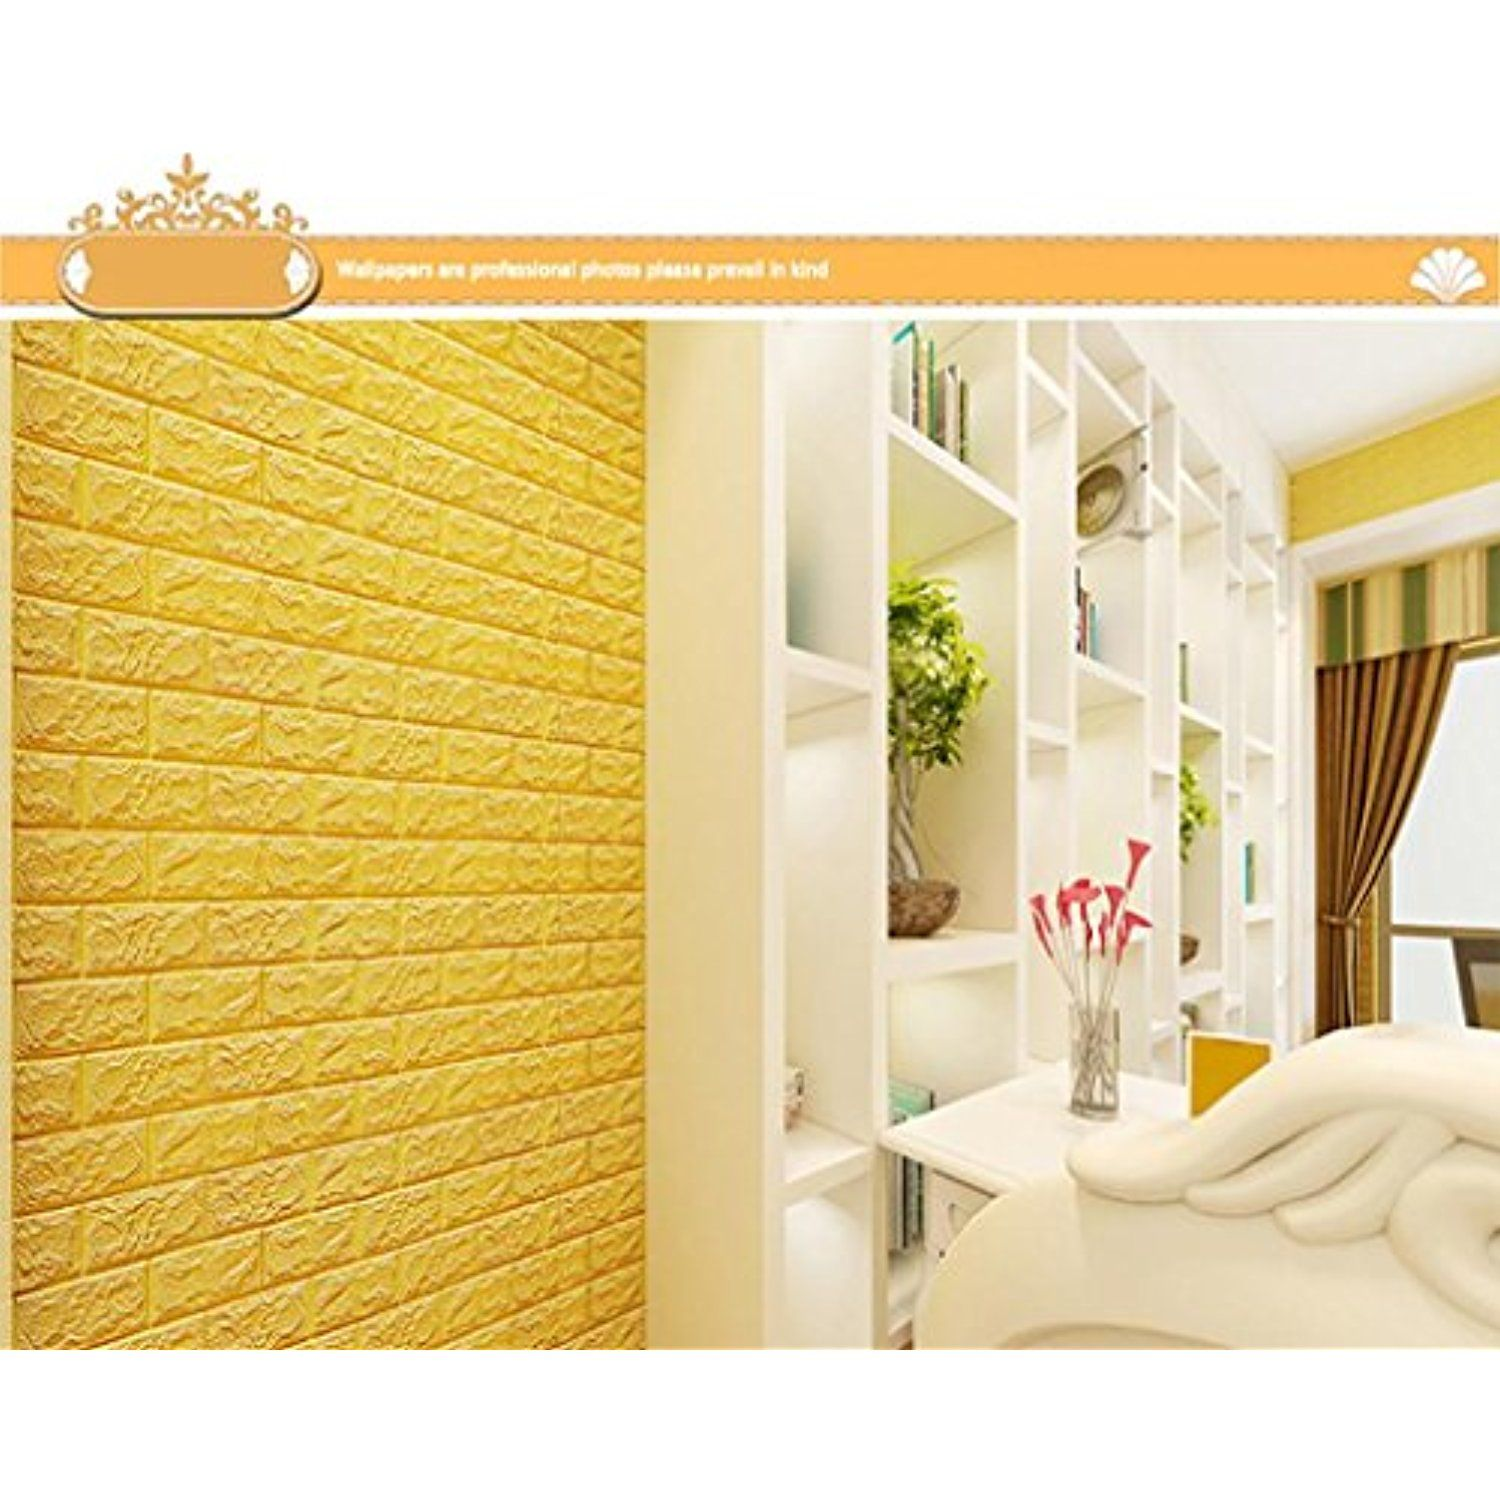 Wall Decal,3D Brick Wall Sticker Self-Adhesive Foam Wallpaper ...